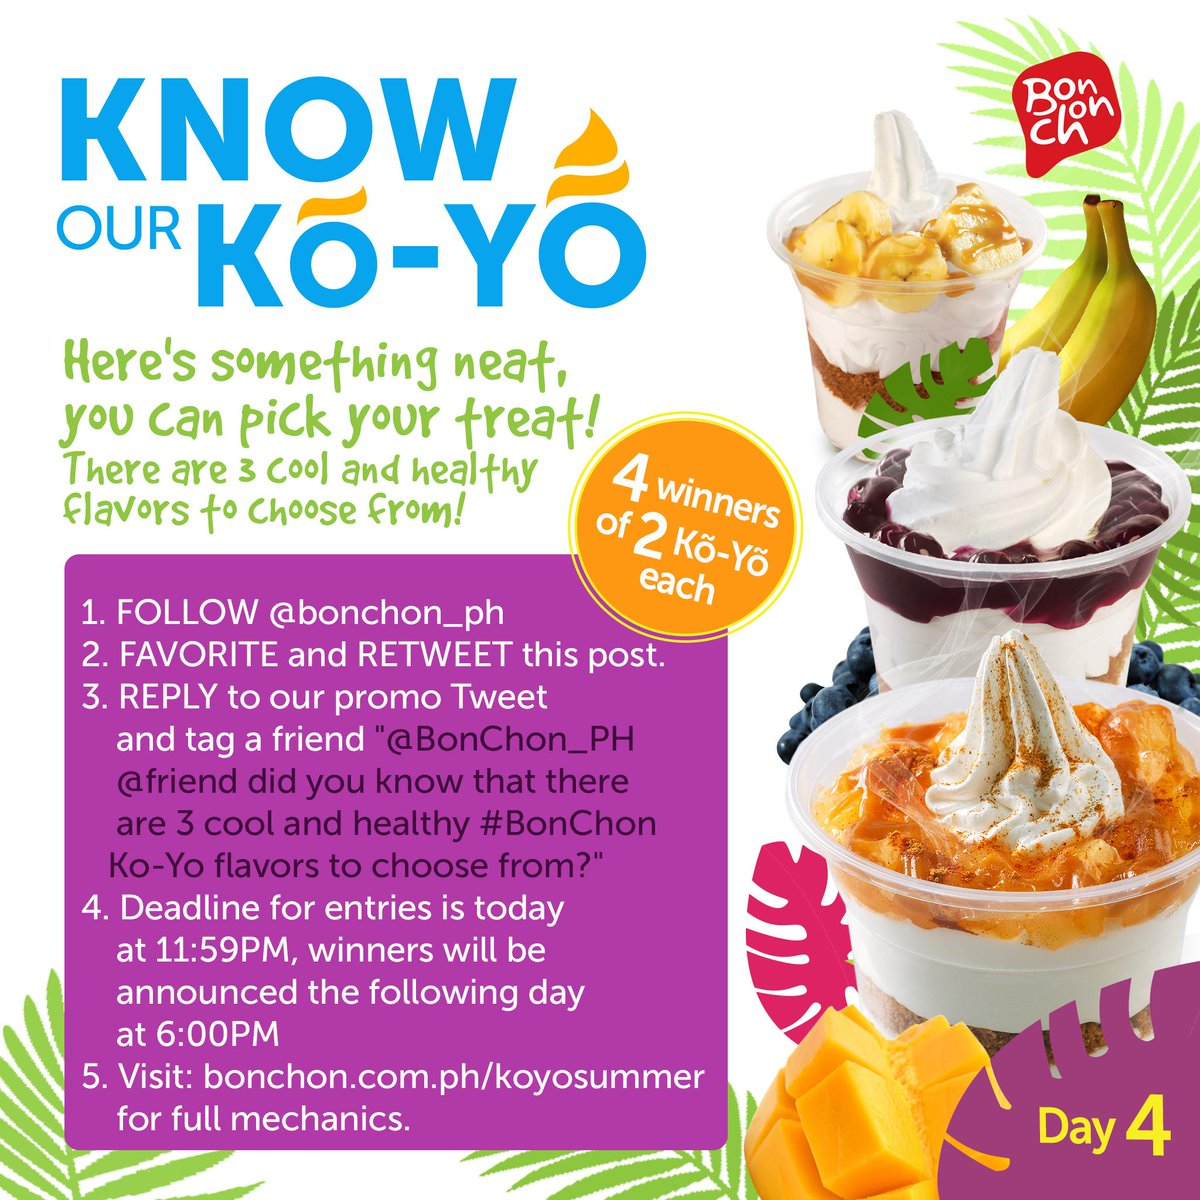 It's Day 4, here's something cool for everyone! Check out http://t.co/htpdgzrGx7 for full mechanics! #BonChon